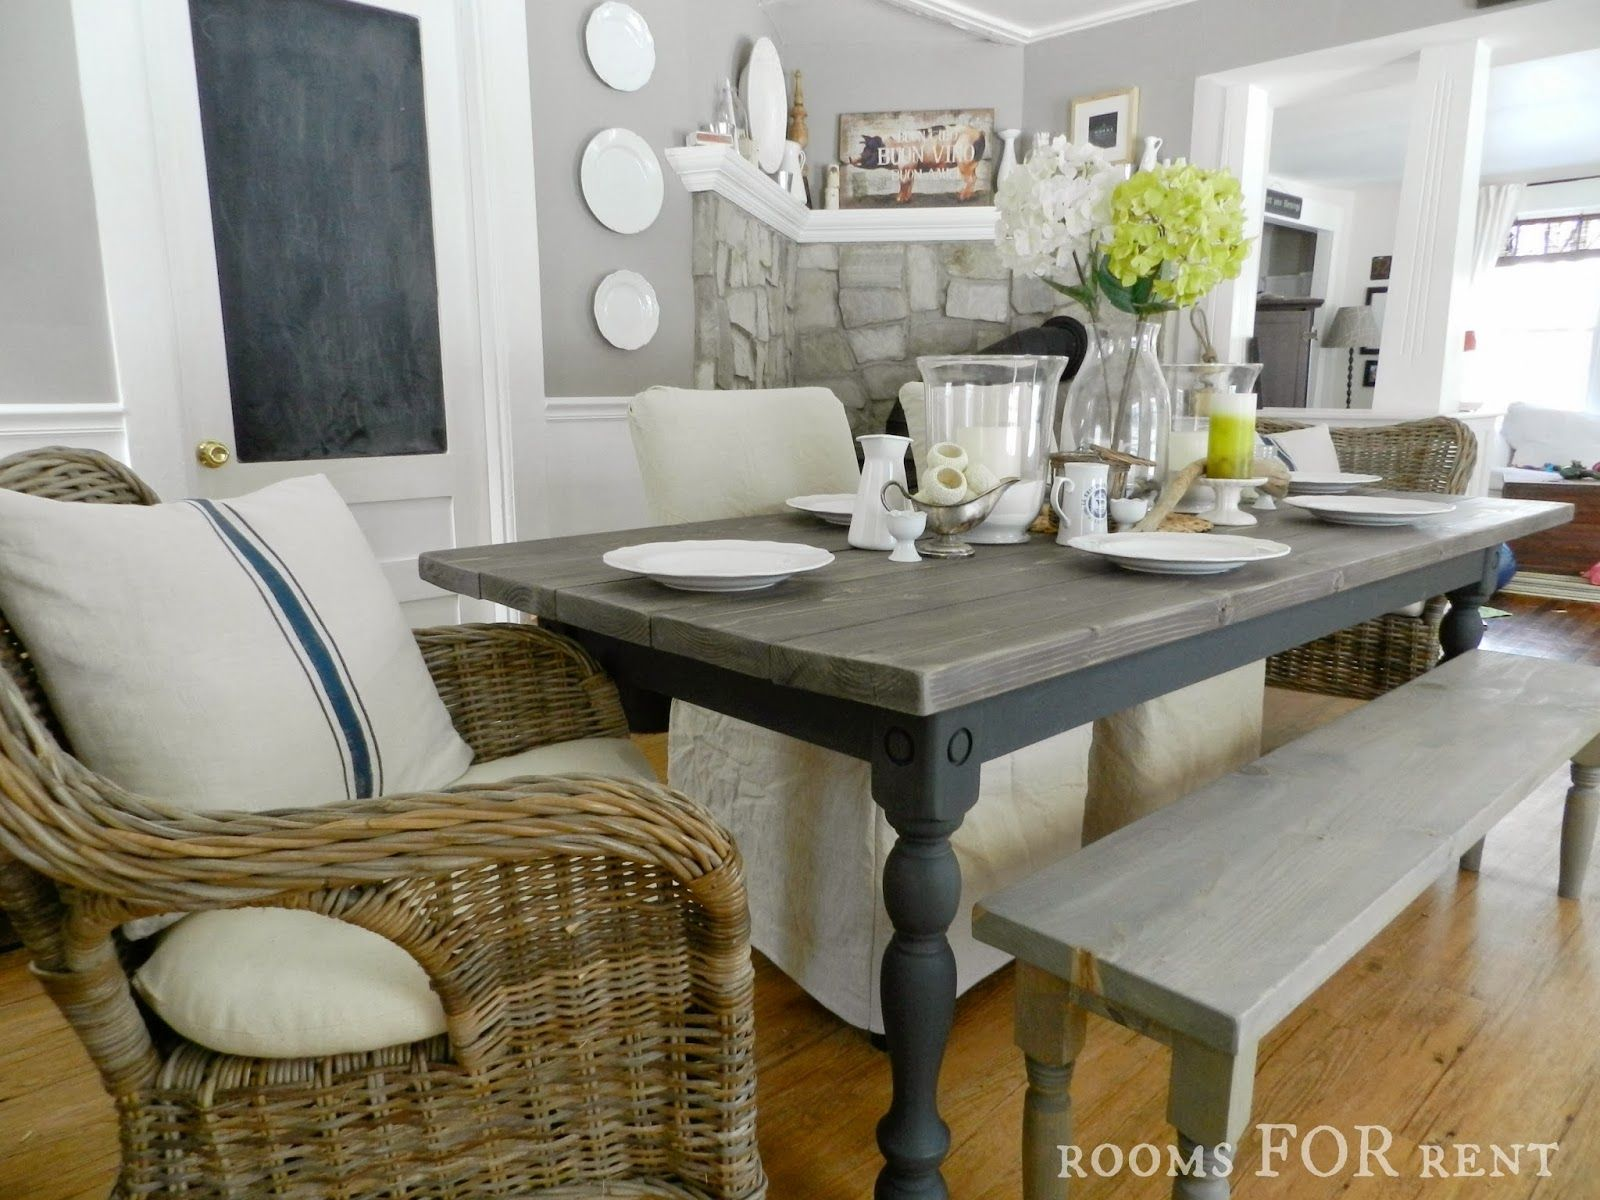 Rooms For Rent Our New Farmhouse Dining Table Dining Room Table